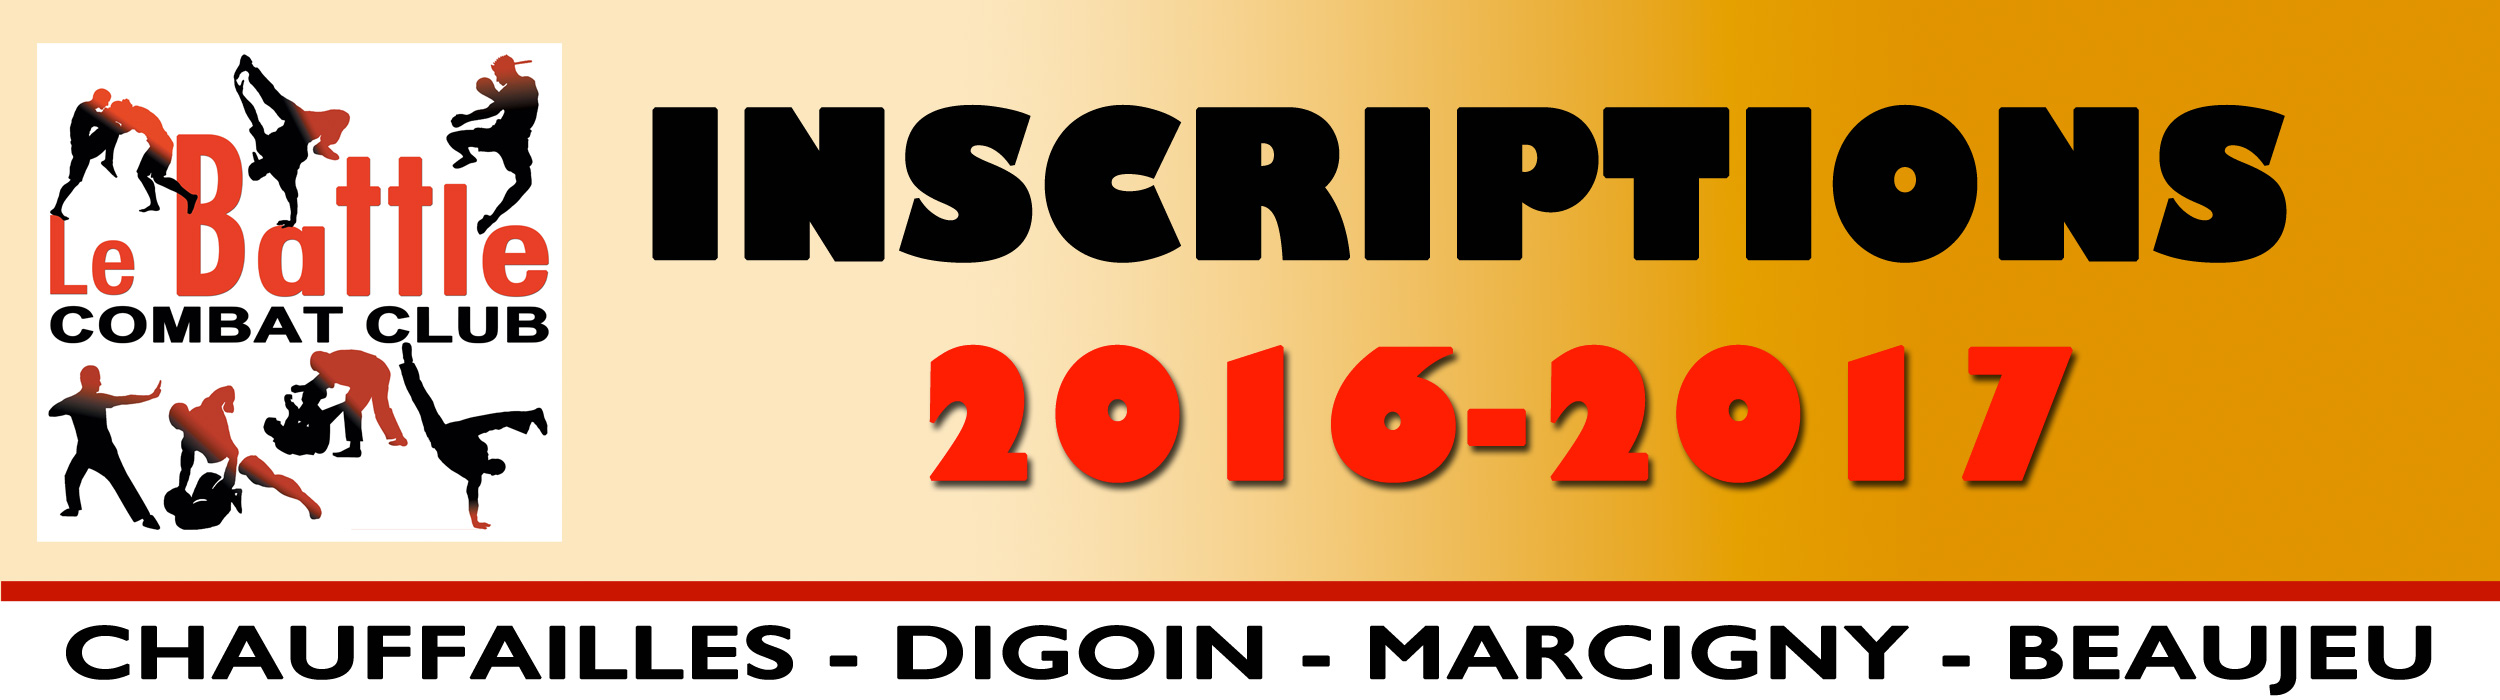 inscriptions_2016-2017